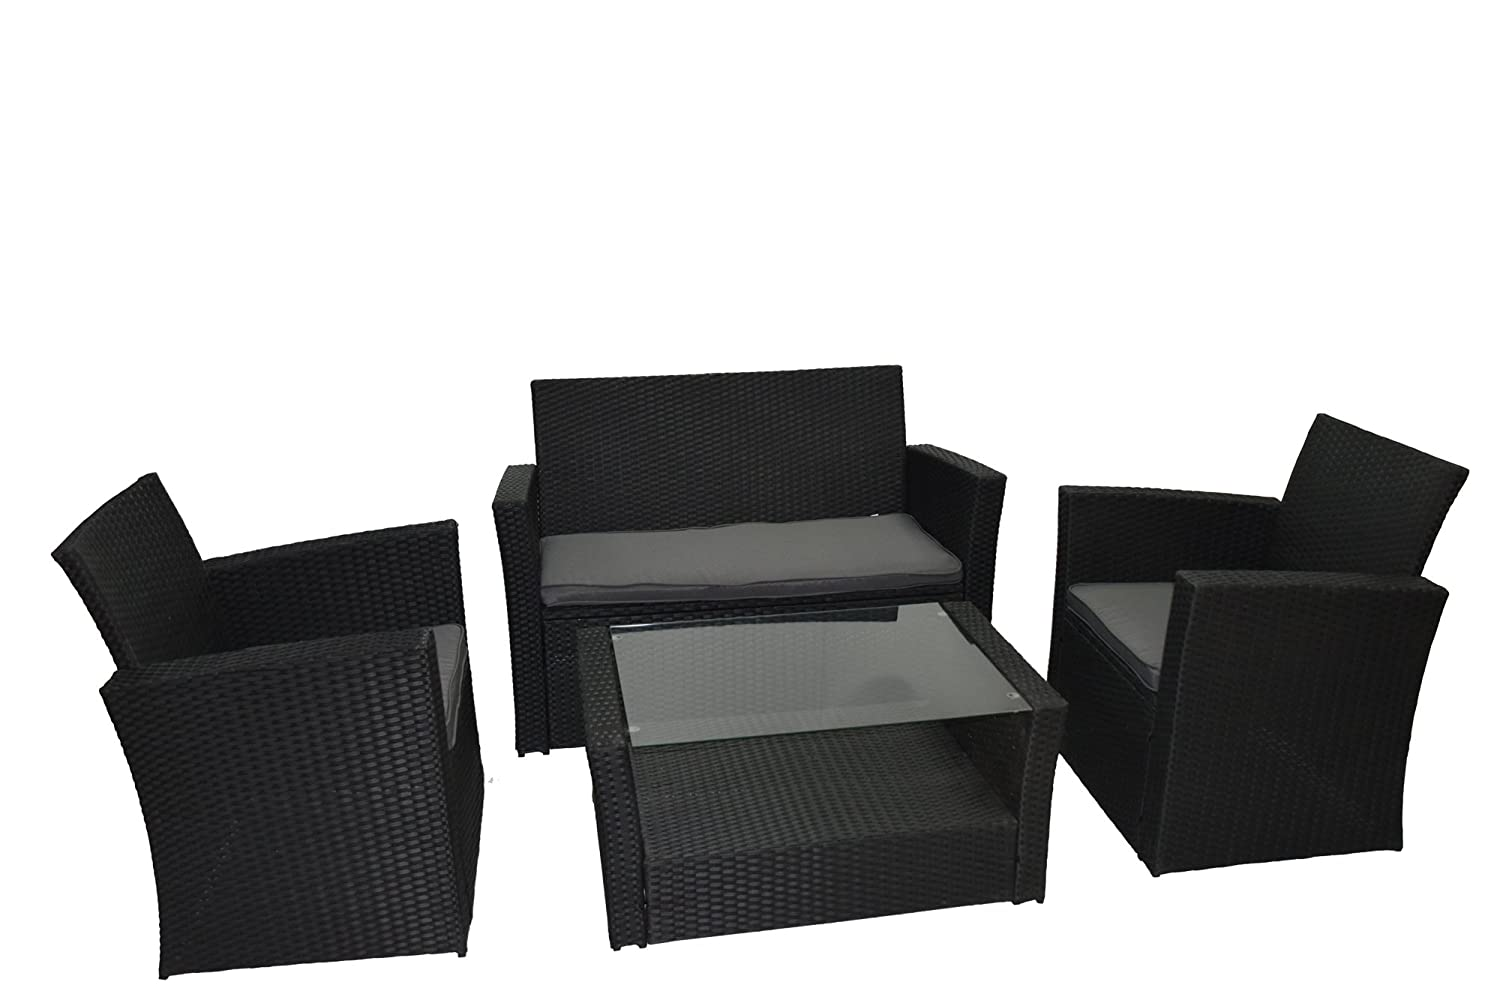 poly rattan gartenm bel gartengarnitur balkonm bel set gm11pra schwarz g nstig kaufen. Black Bedroom Furniture Sets. Home Design Ideas